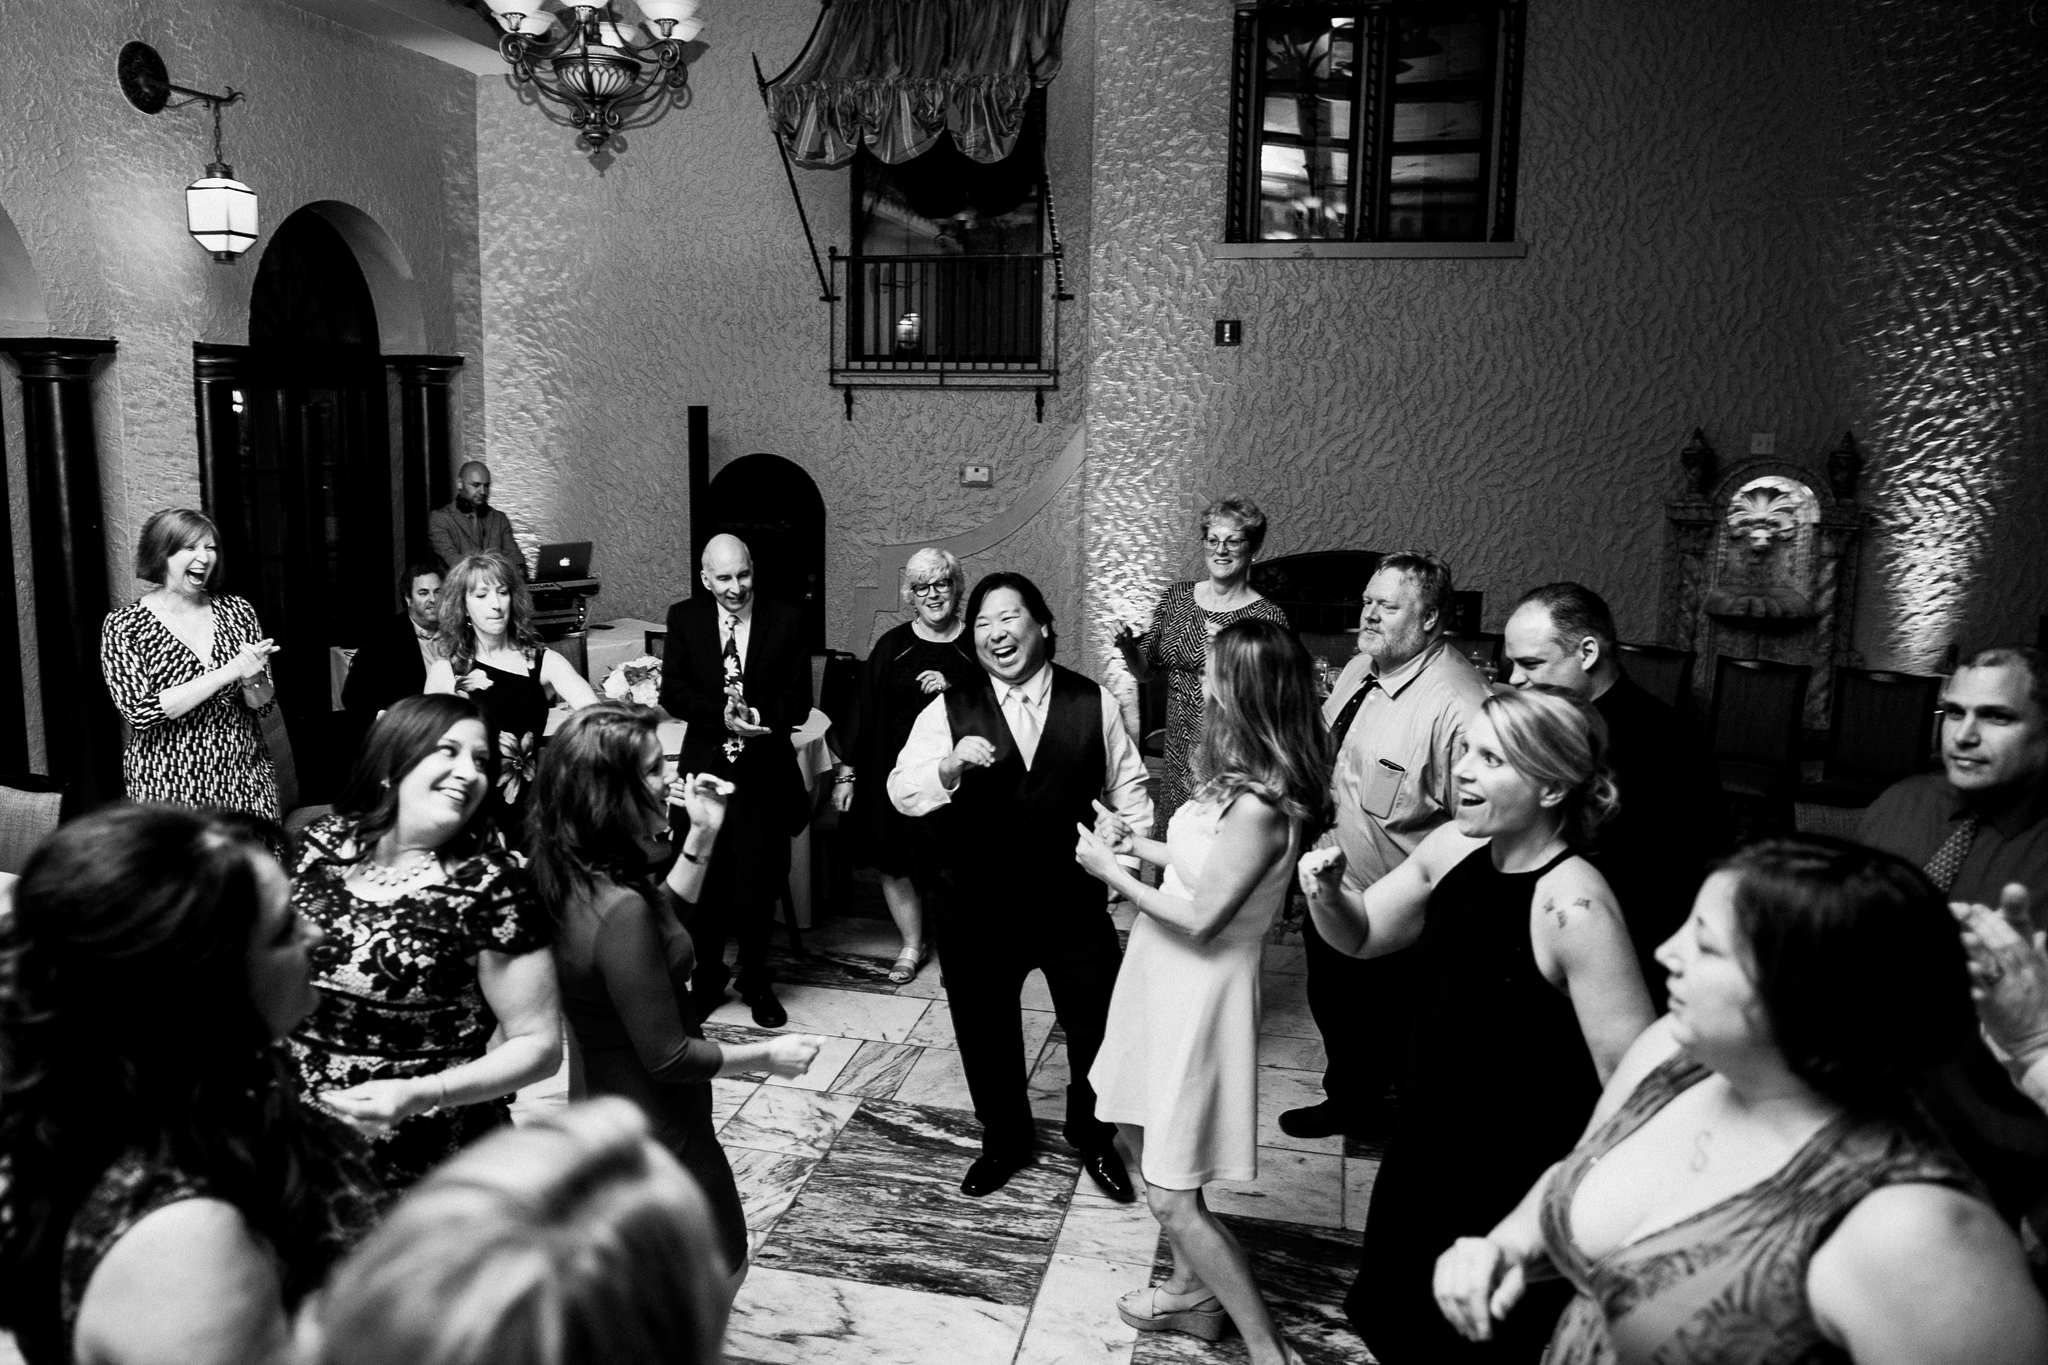 hotel_baker_st_charles_IL_wedding_photographer_0076.jpg